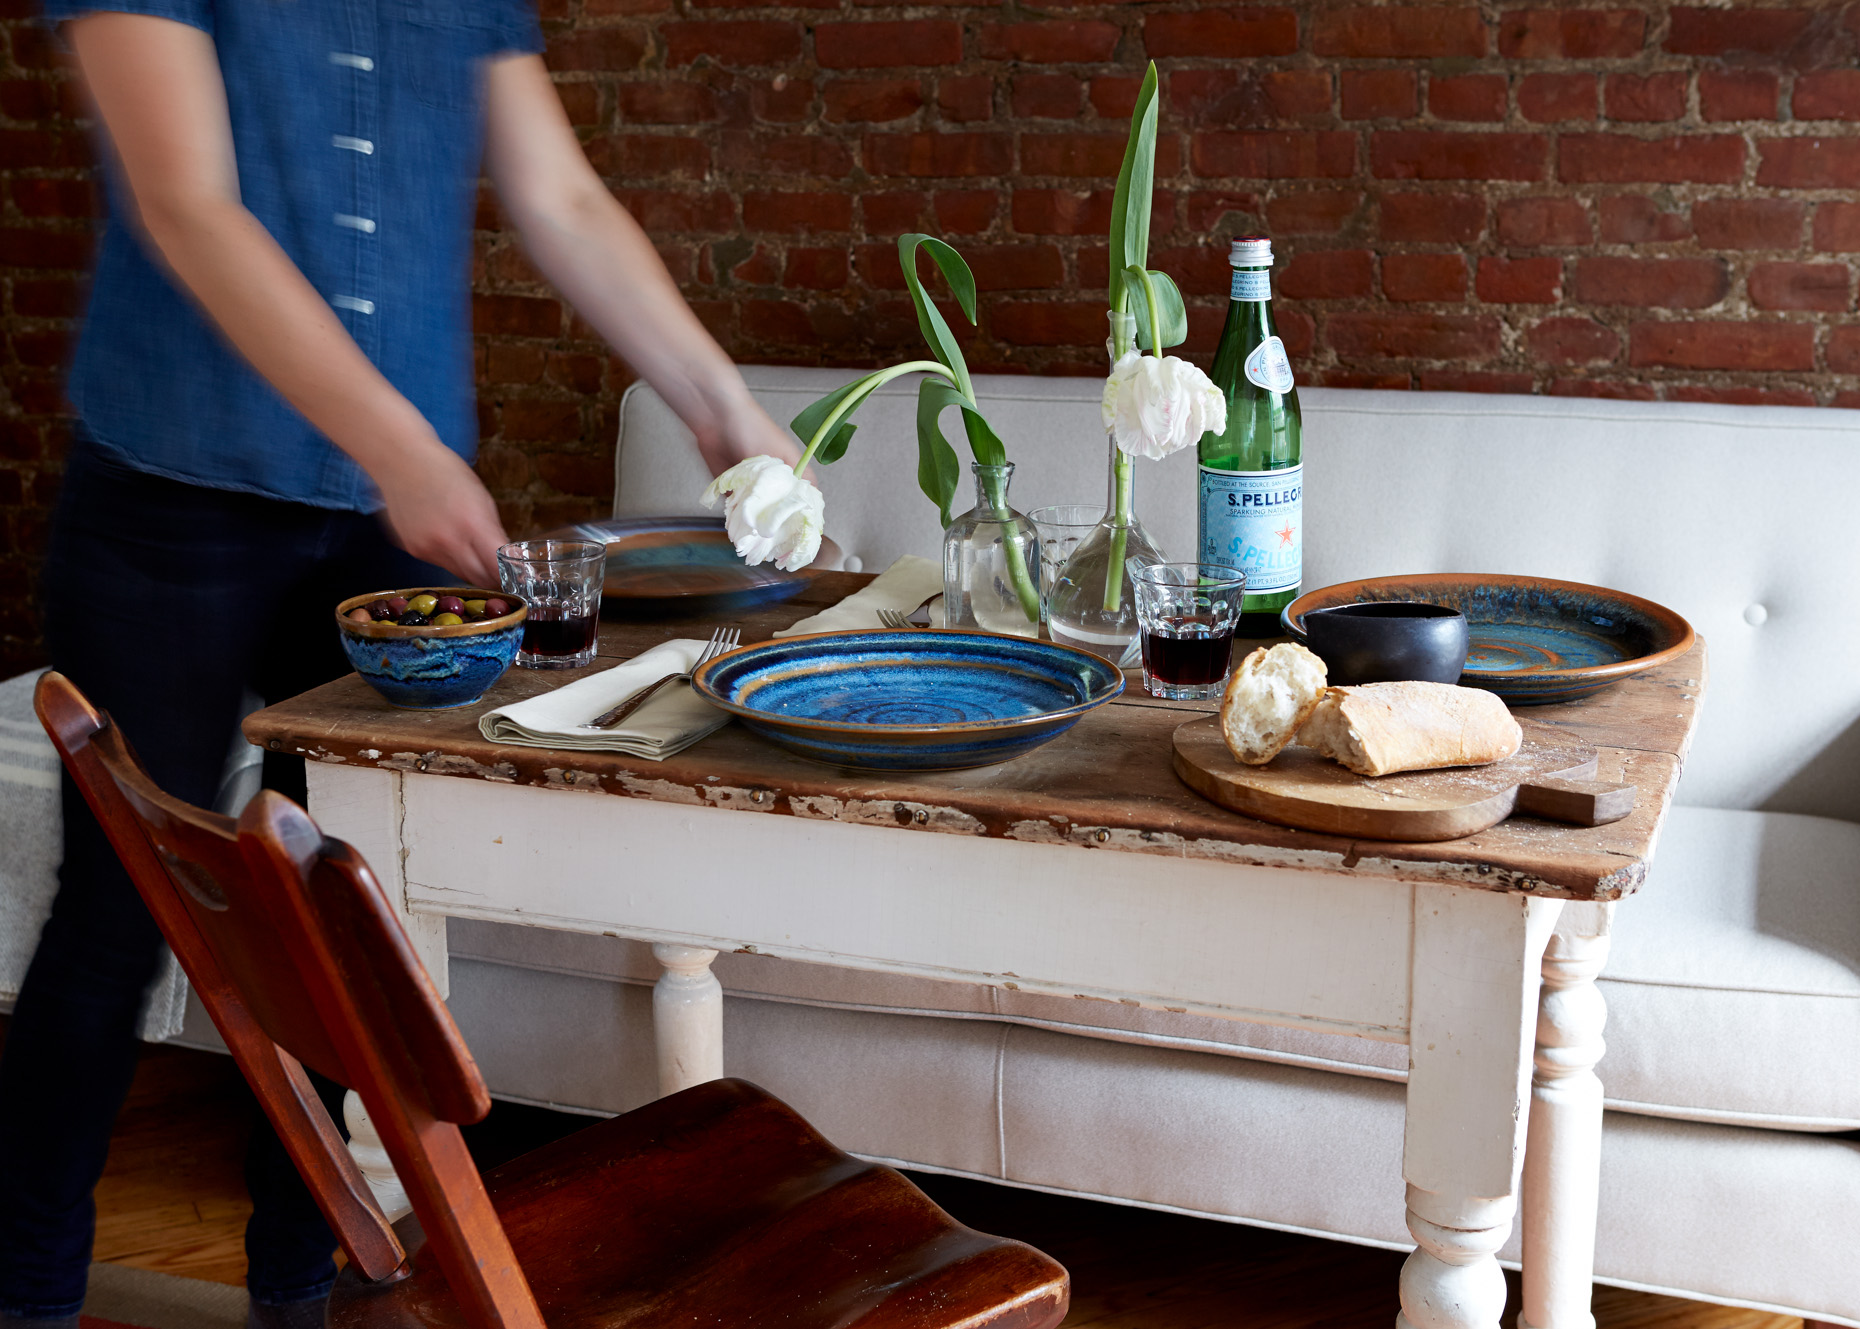 BizJones_204Wyckoff_DiningTable_withPerson_web.jpg